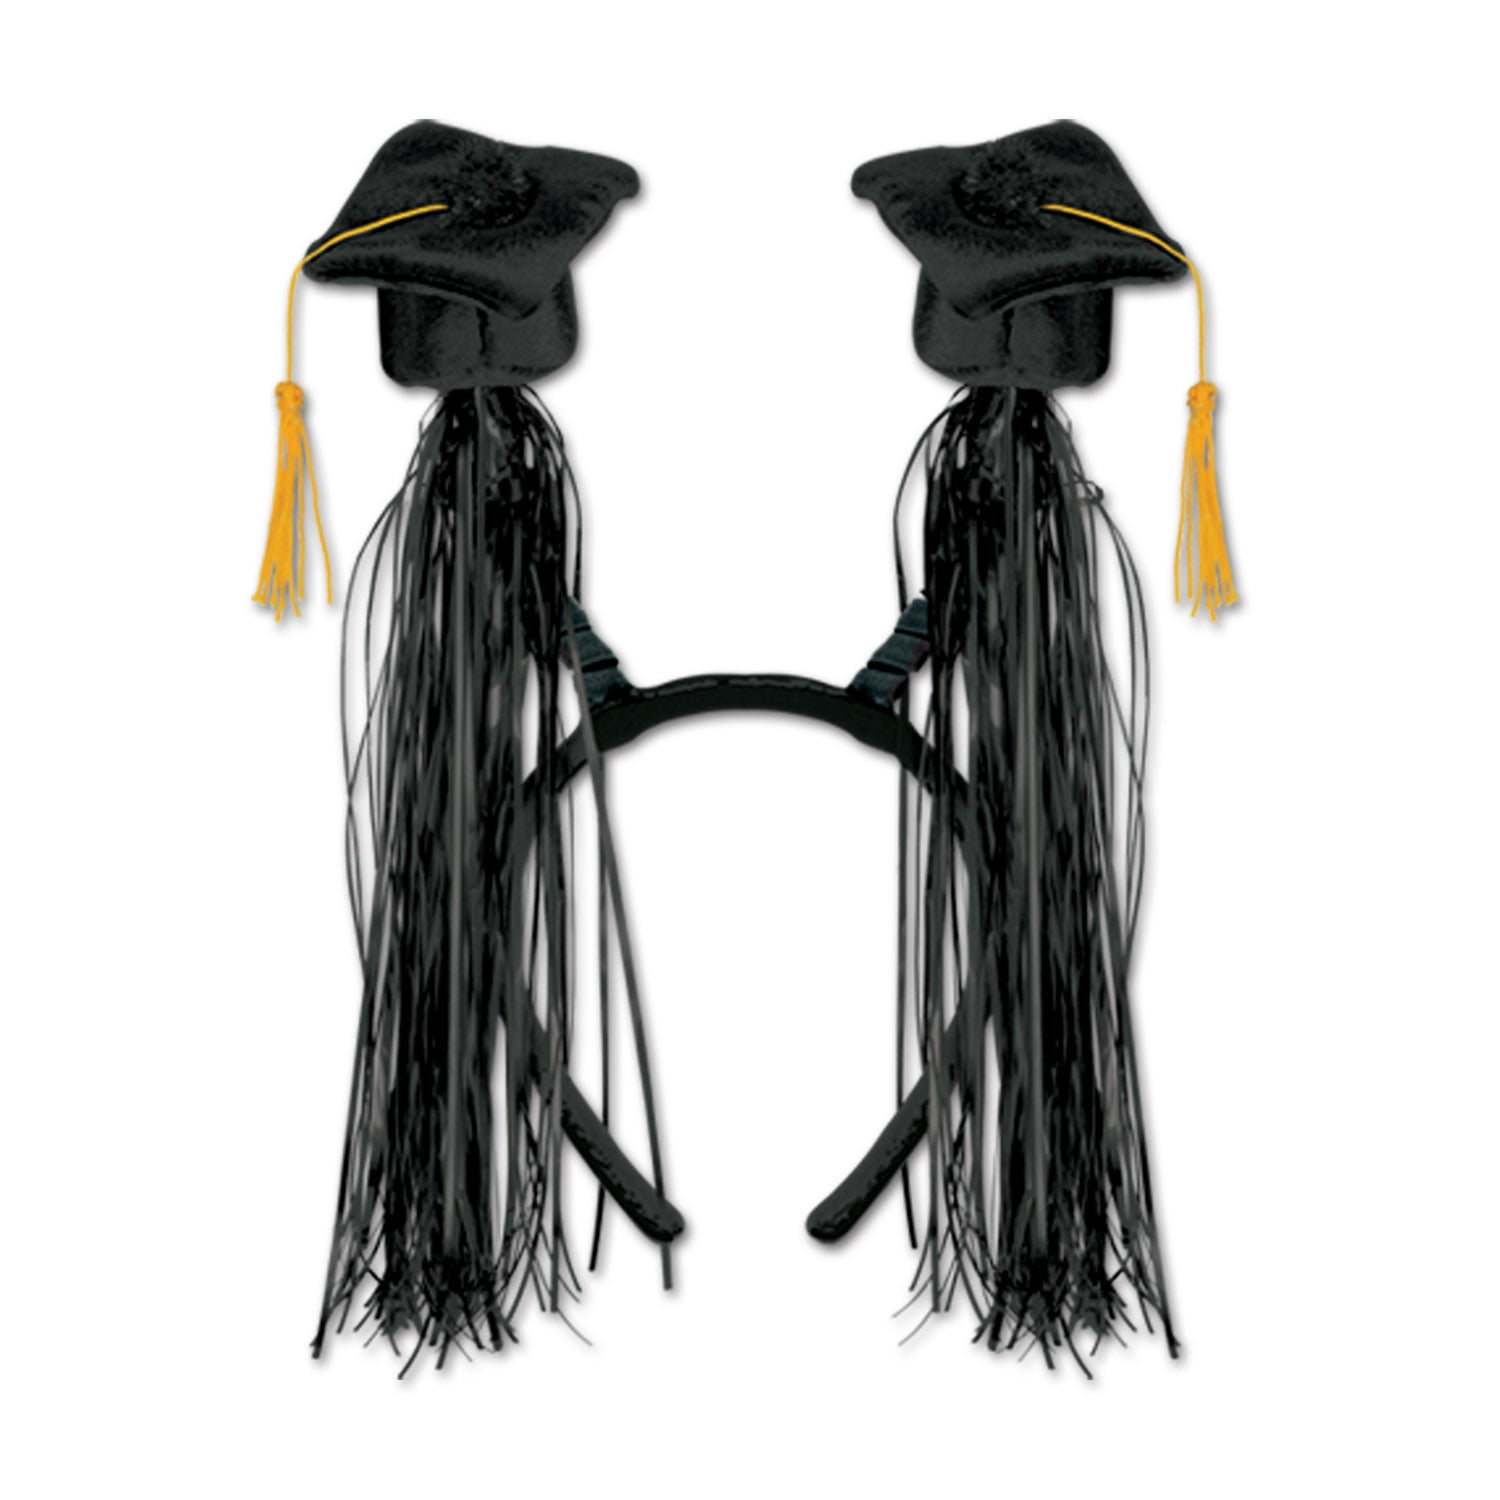 Grad Cap w/Fringe Boppers, black by Beistle - Graduation Theme Decorations